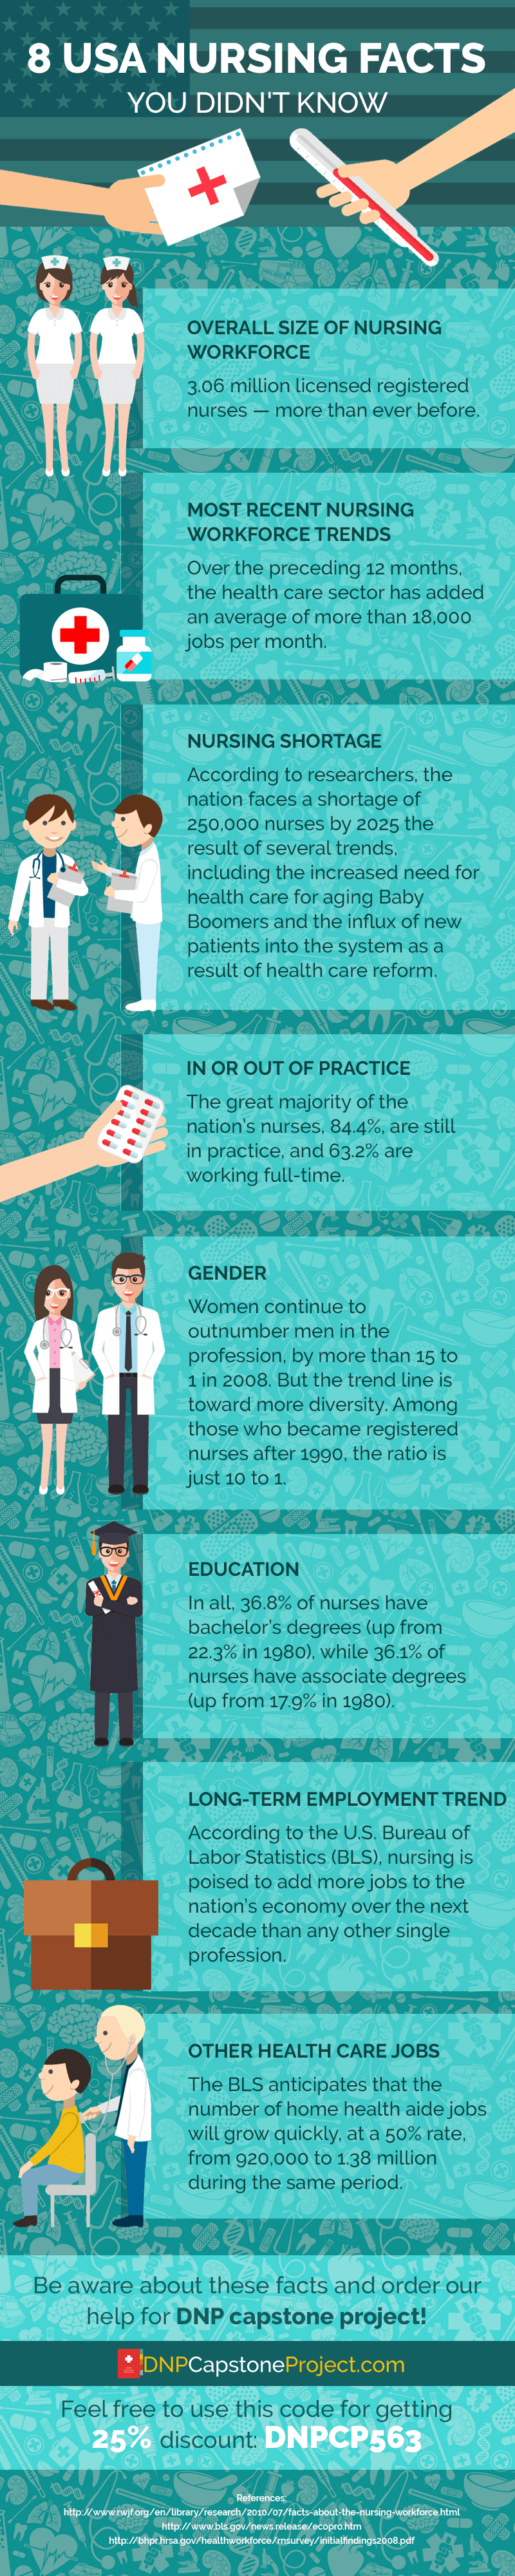 usa nursing facts